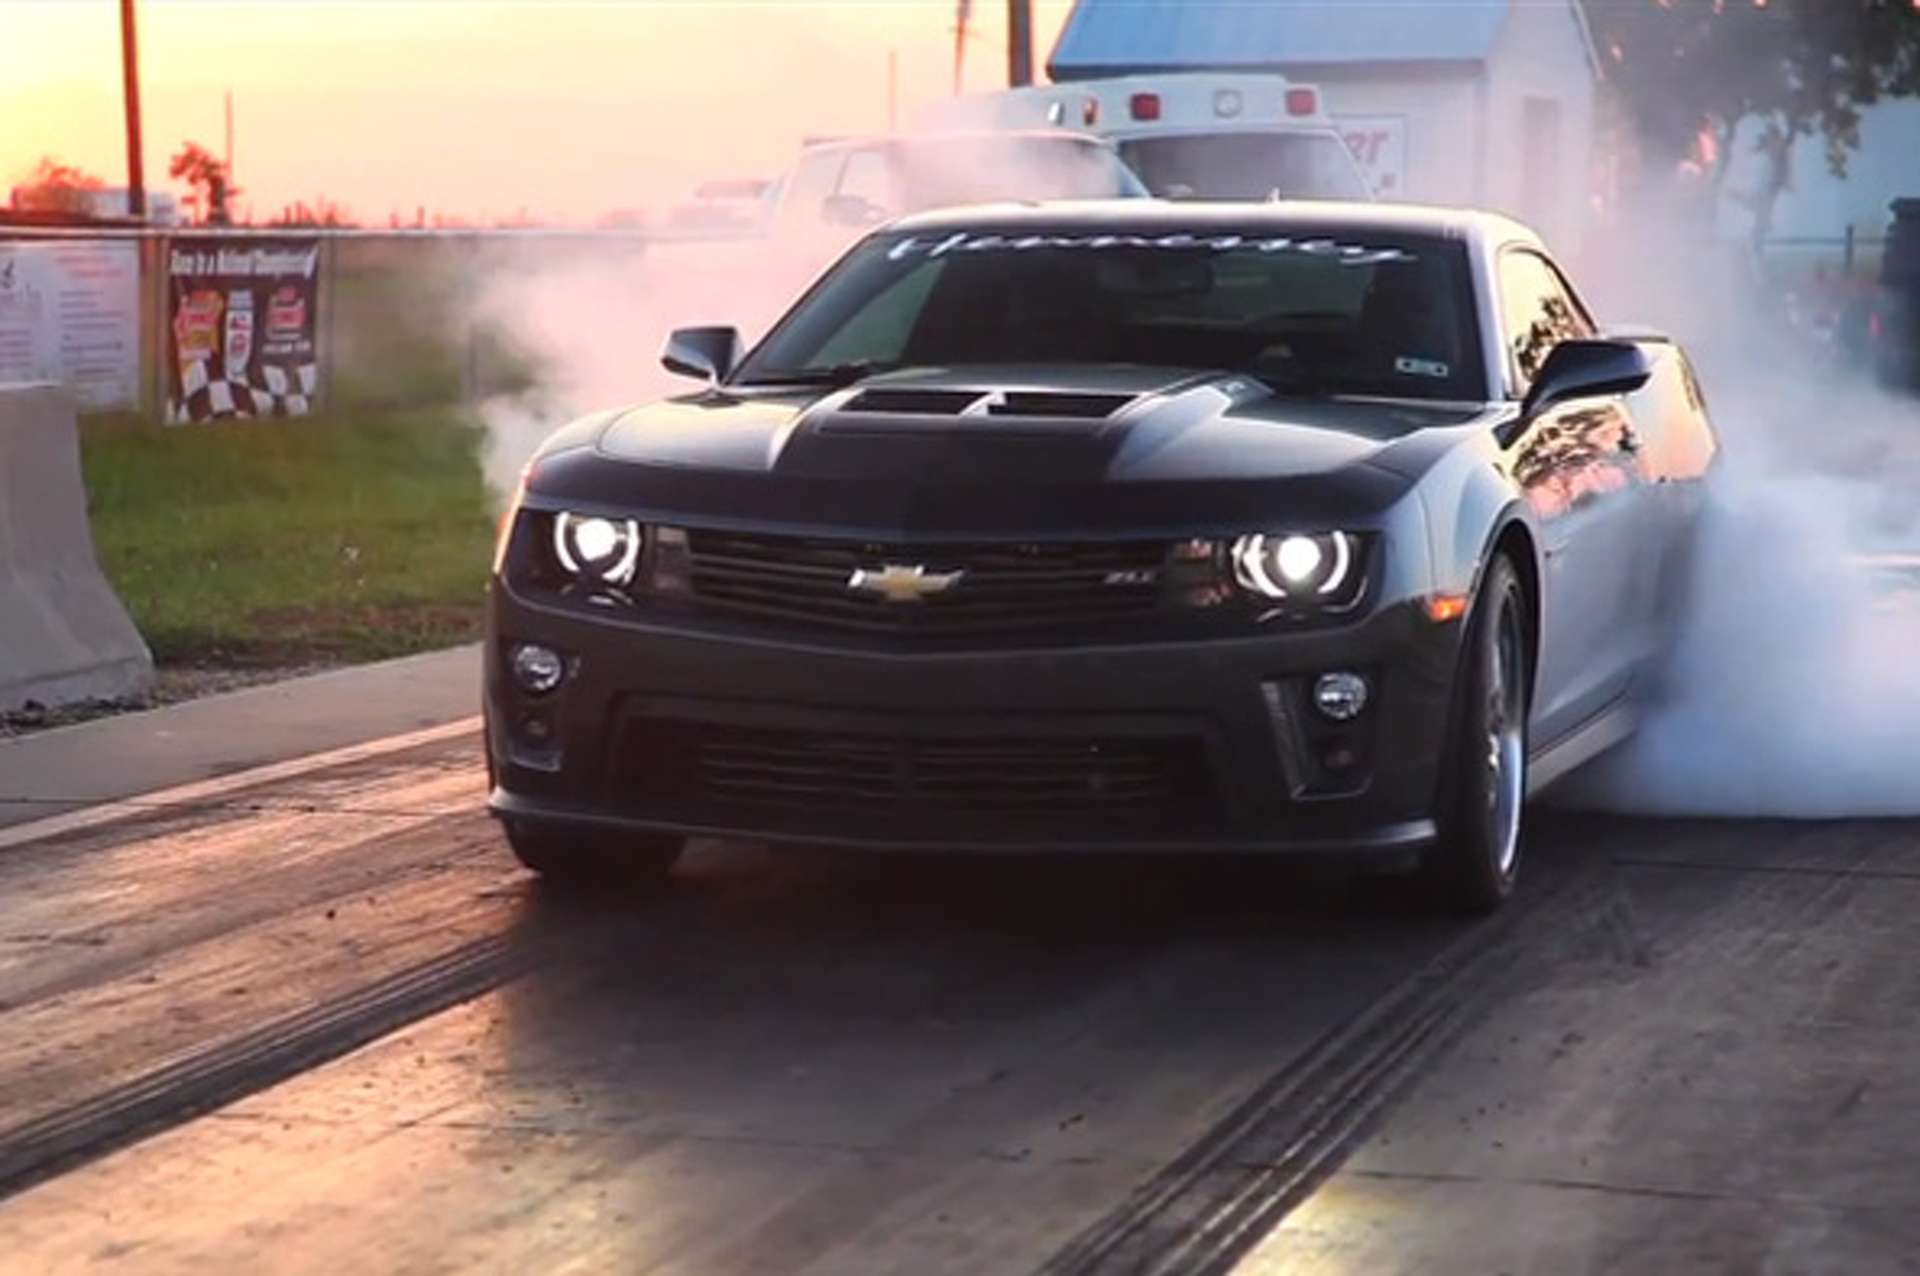 The 700-hp Hennessey HPE Camaro ZL1 Eats Tires, Expels Smoke